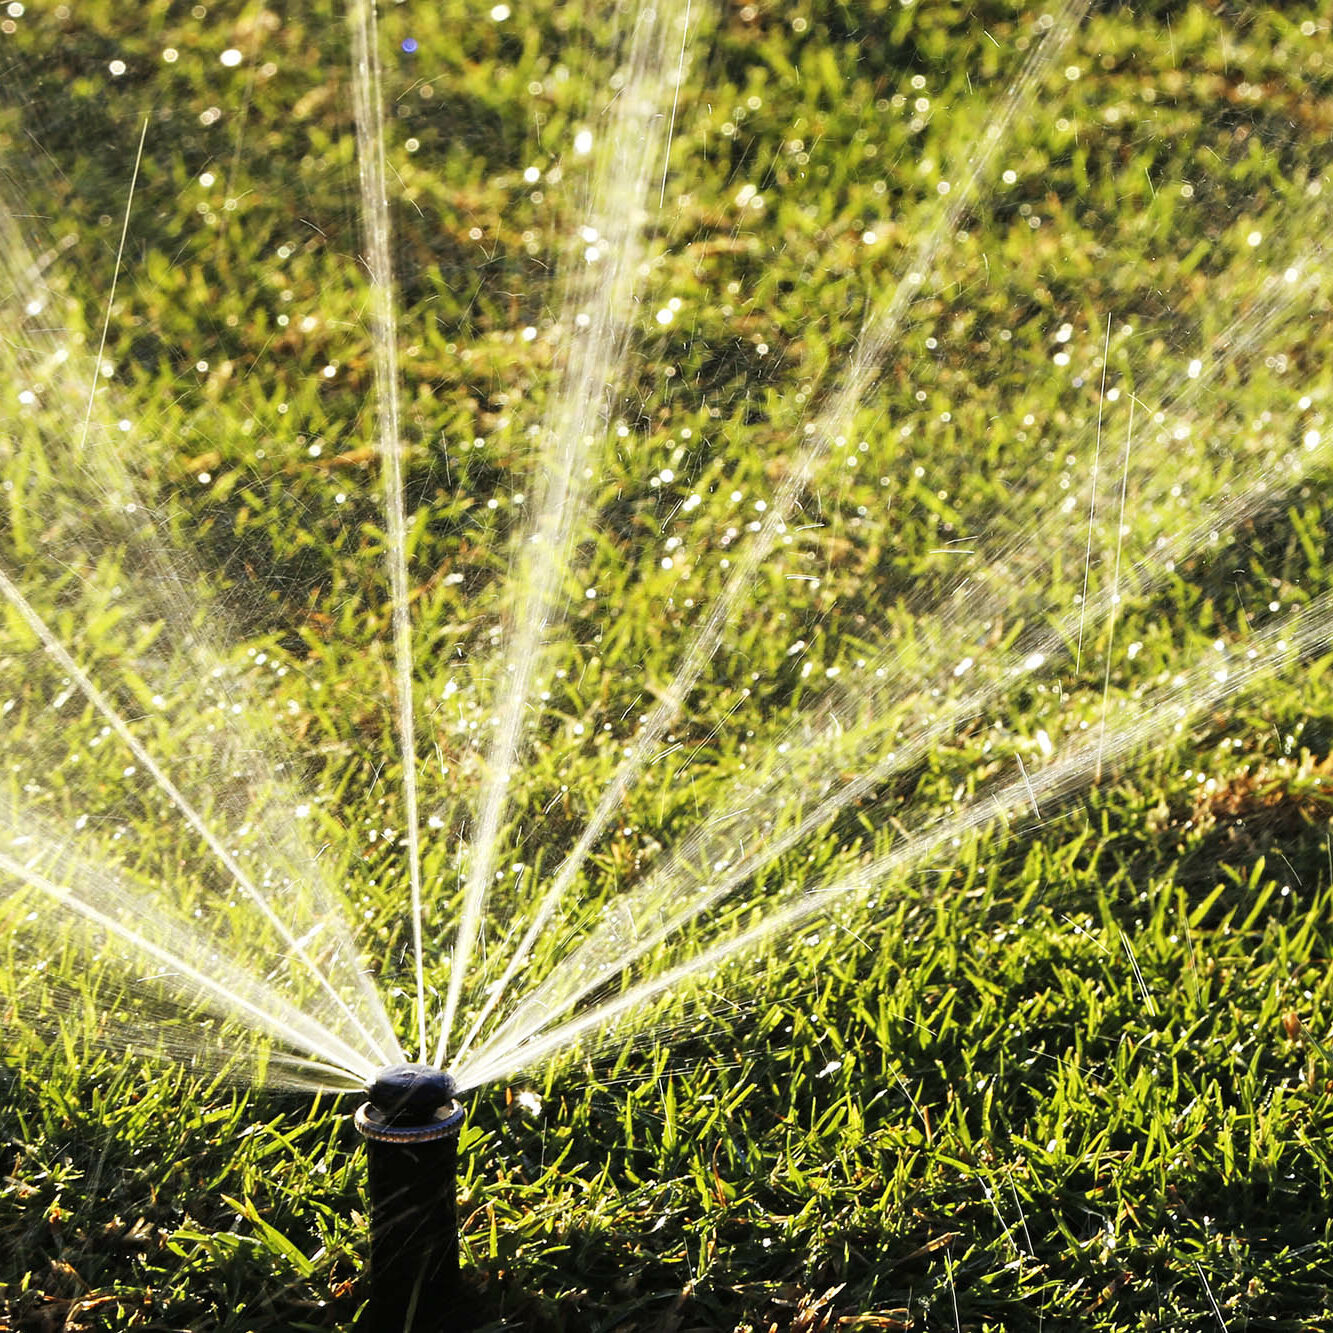 Sprinkler spraying water in grass field.